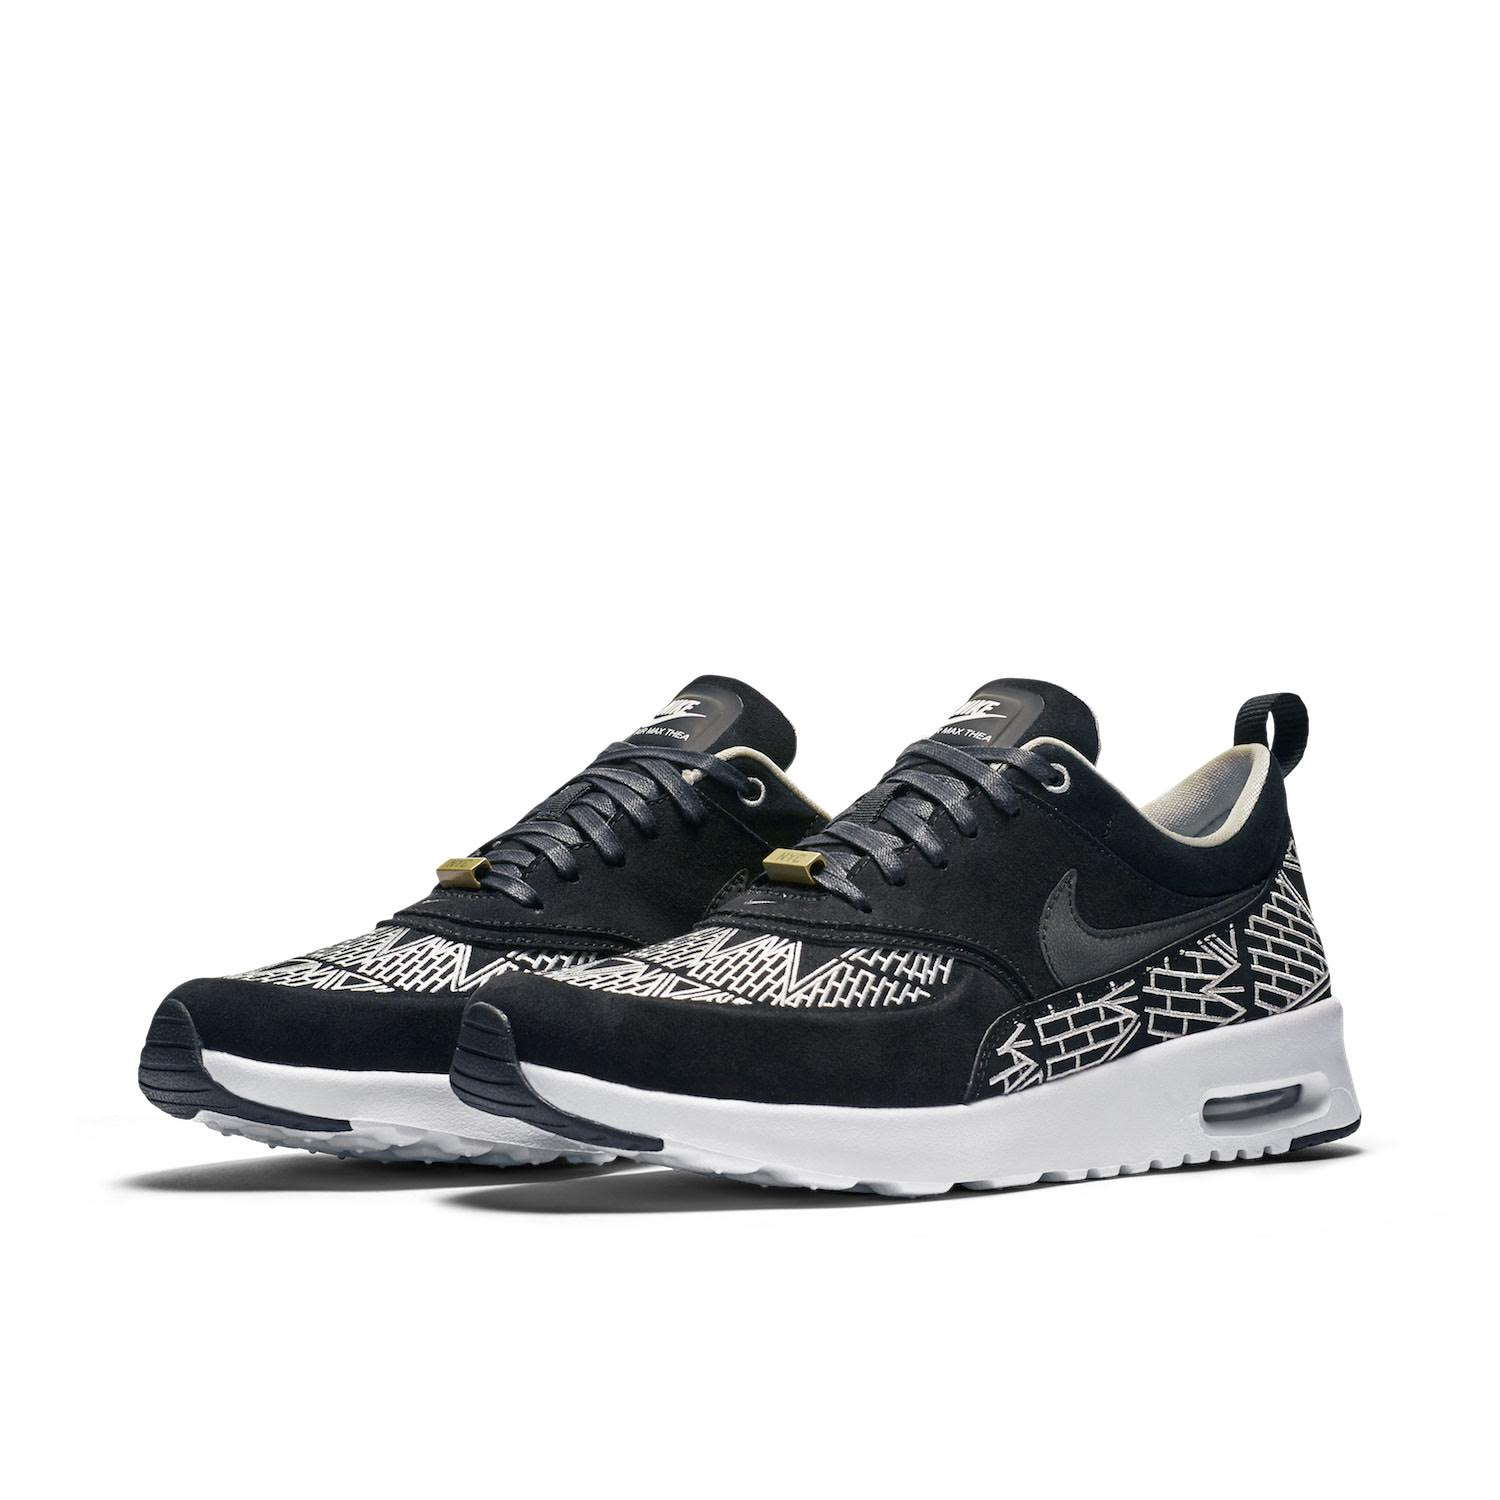 nike air max ultra look of the city pack arrives in sa. Black Bedroom Furniture Sets. Home Design Ideas